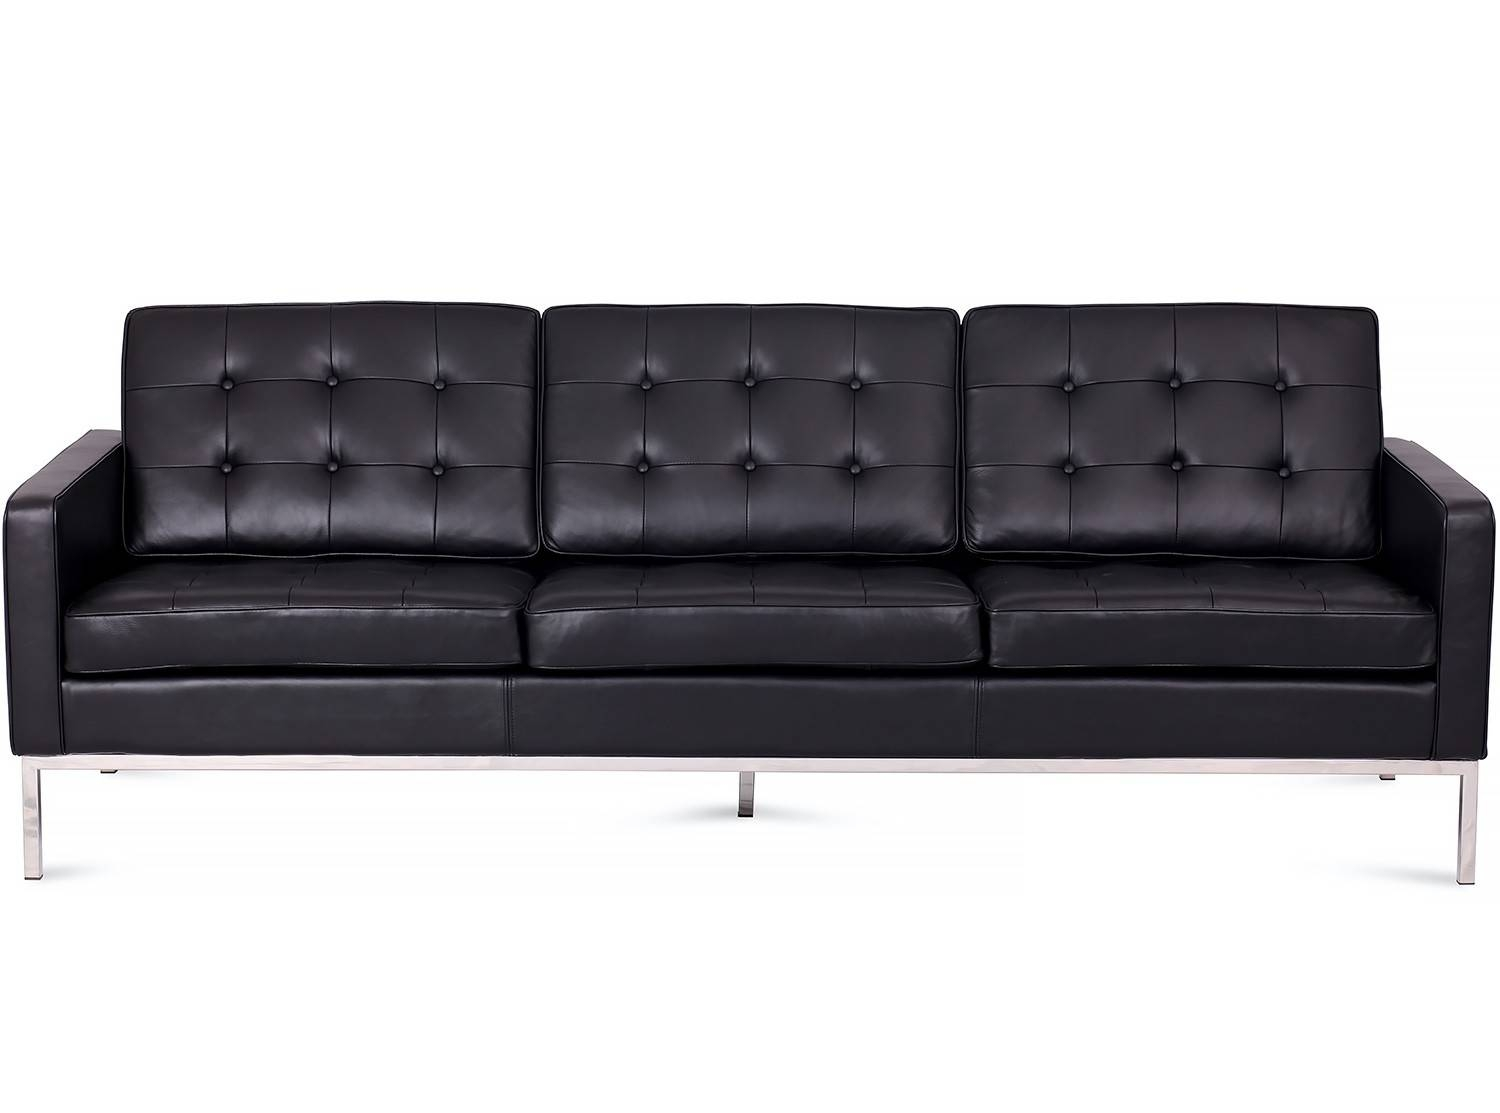 Florence Knoll Sofa 3 Seater Leather (Platinum Replica) in Florence Sofas (Image 10 of 30)